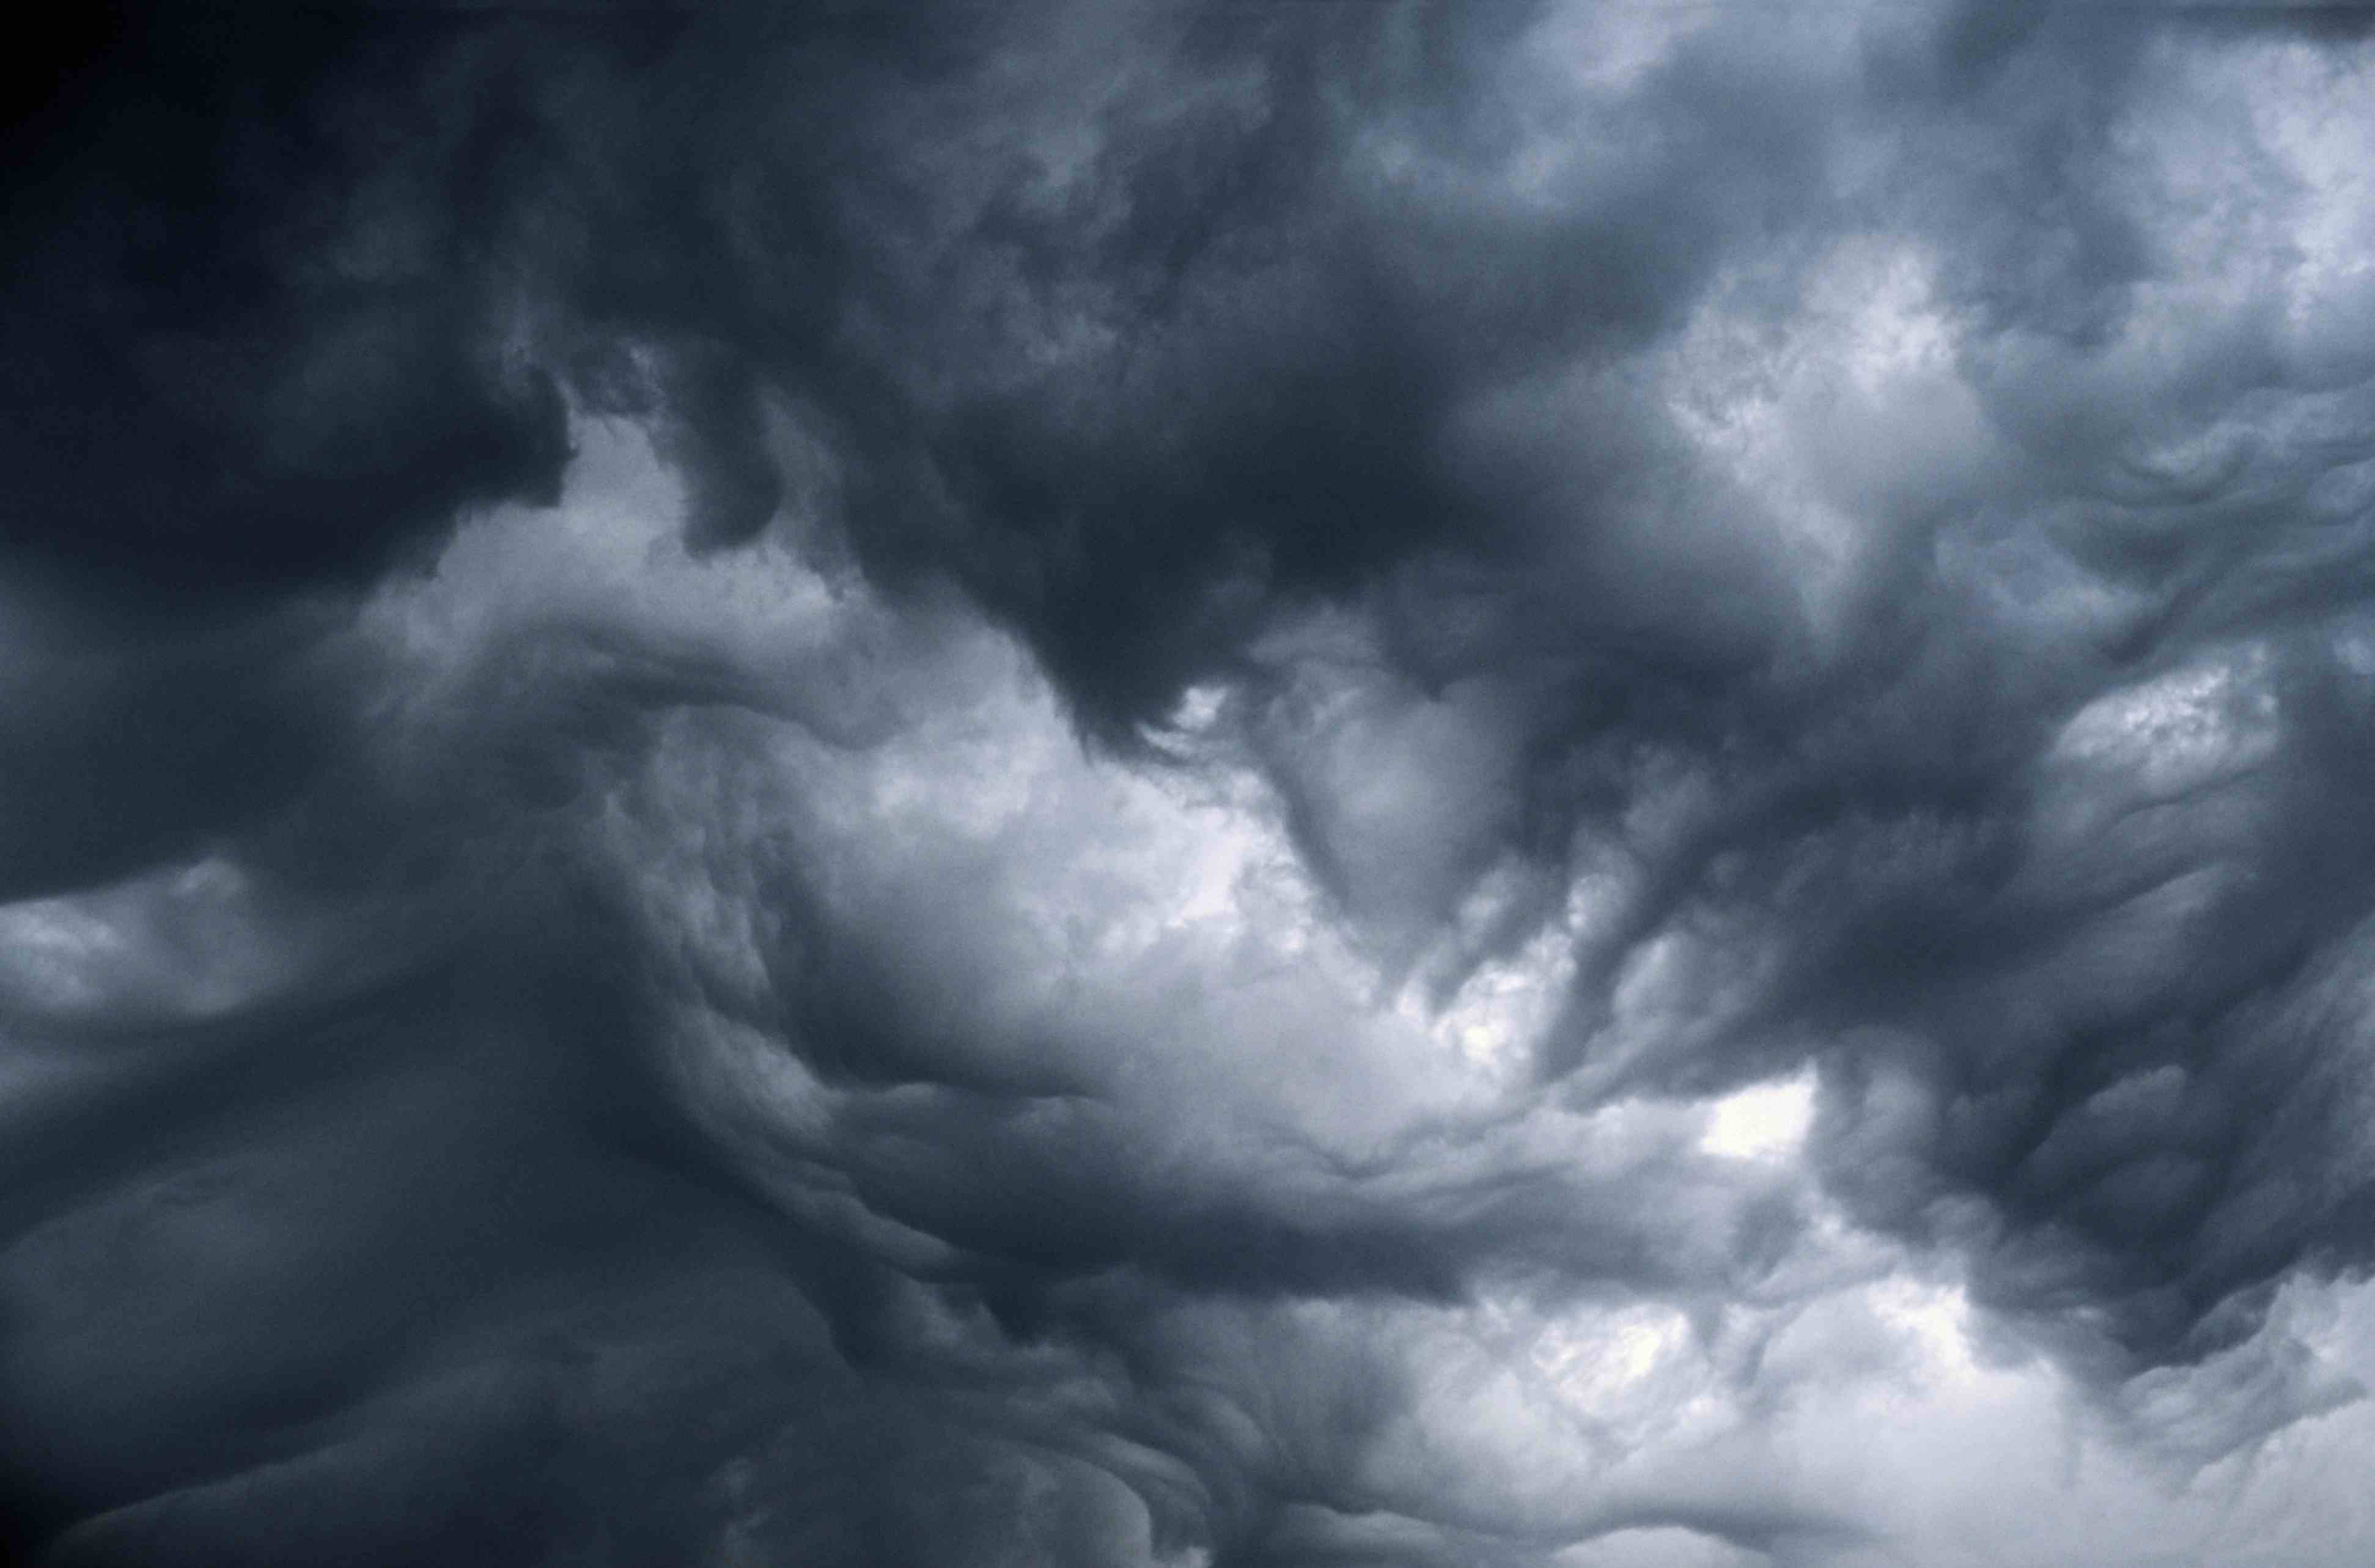 Asperitas clouds are the newest cloud type, proposed in 2009.